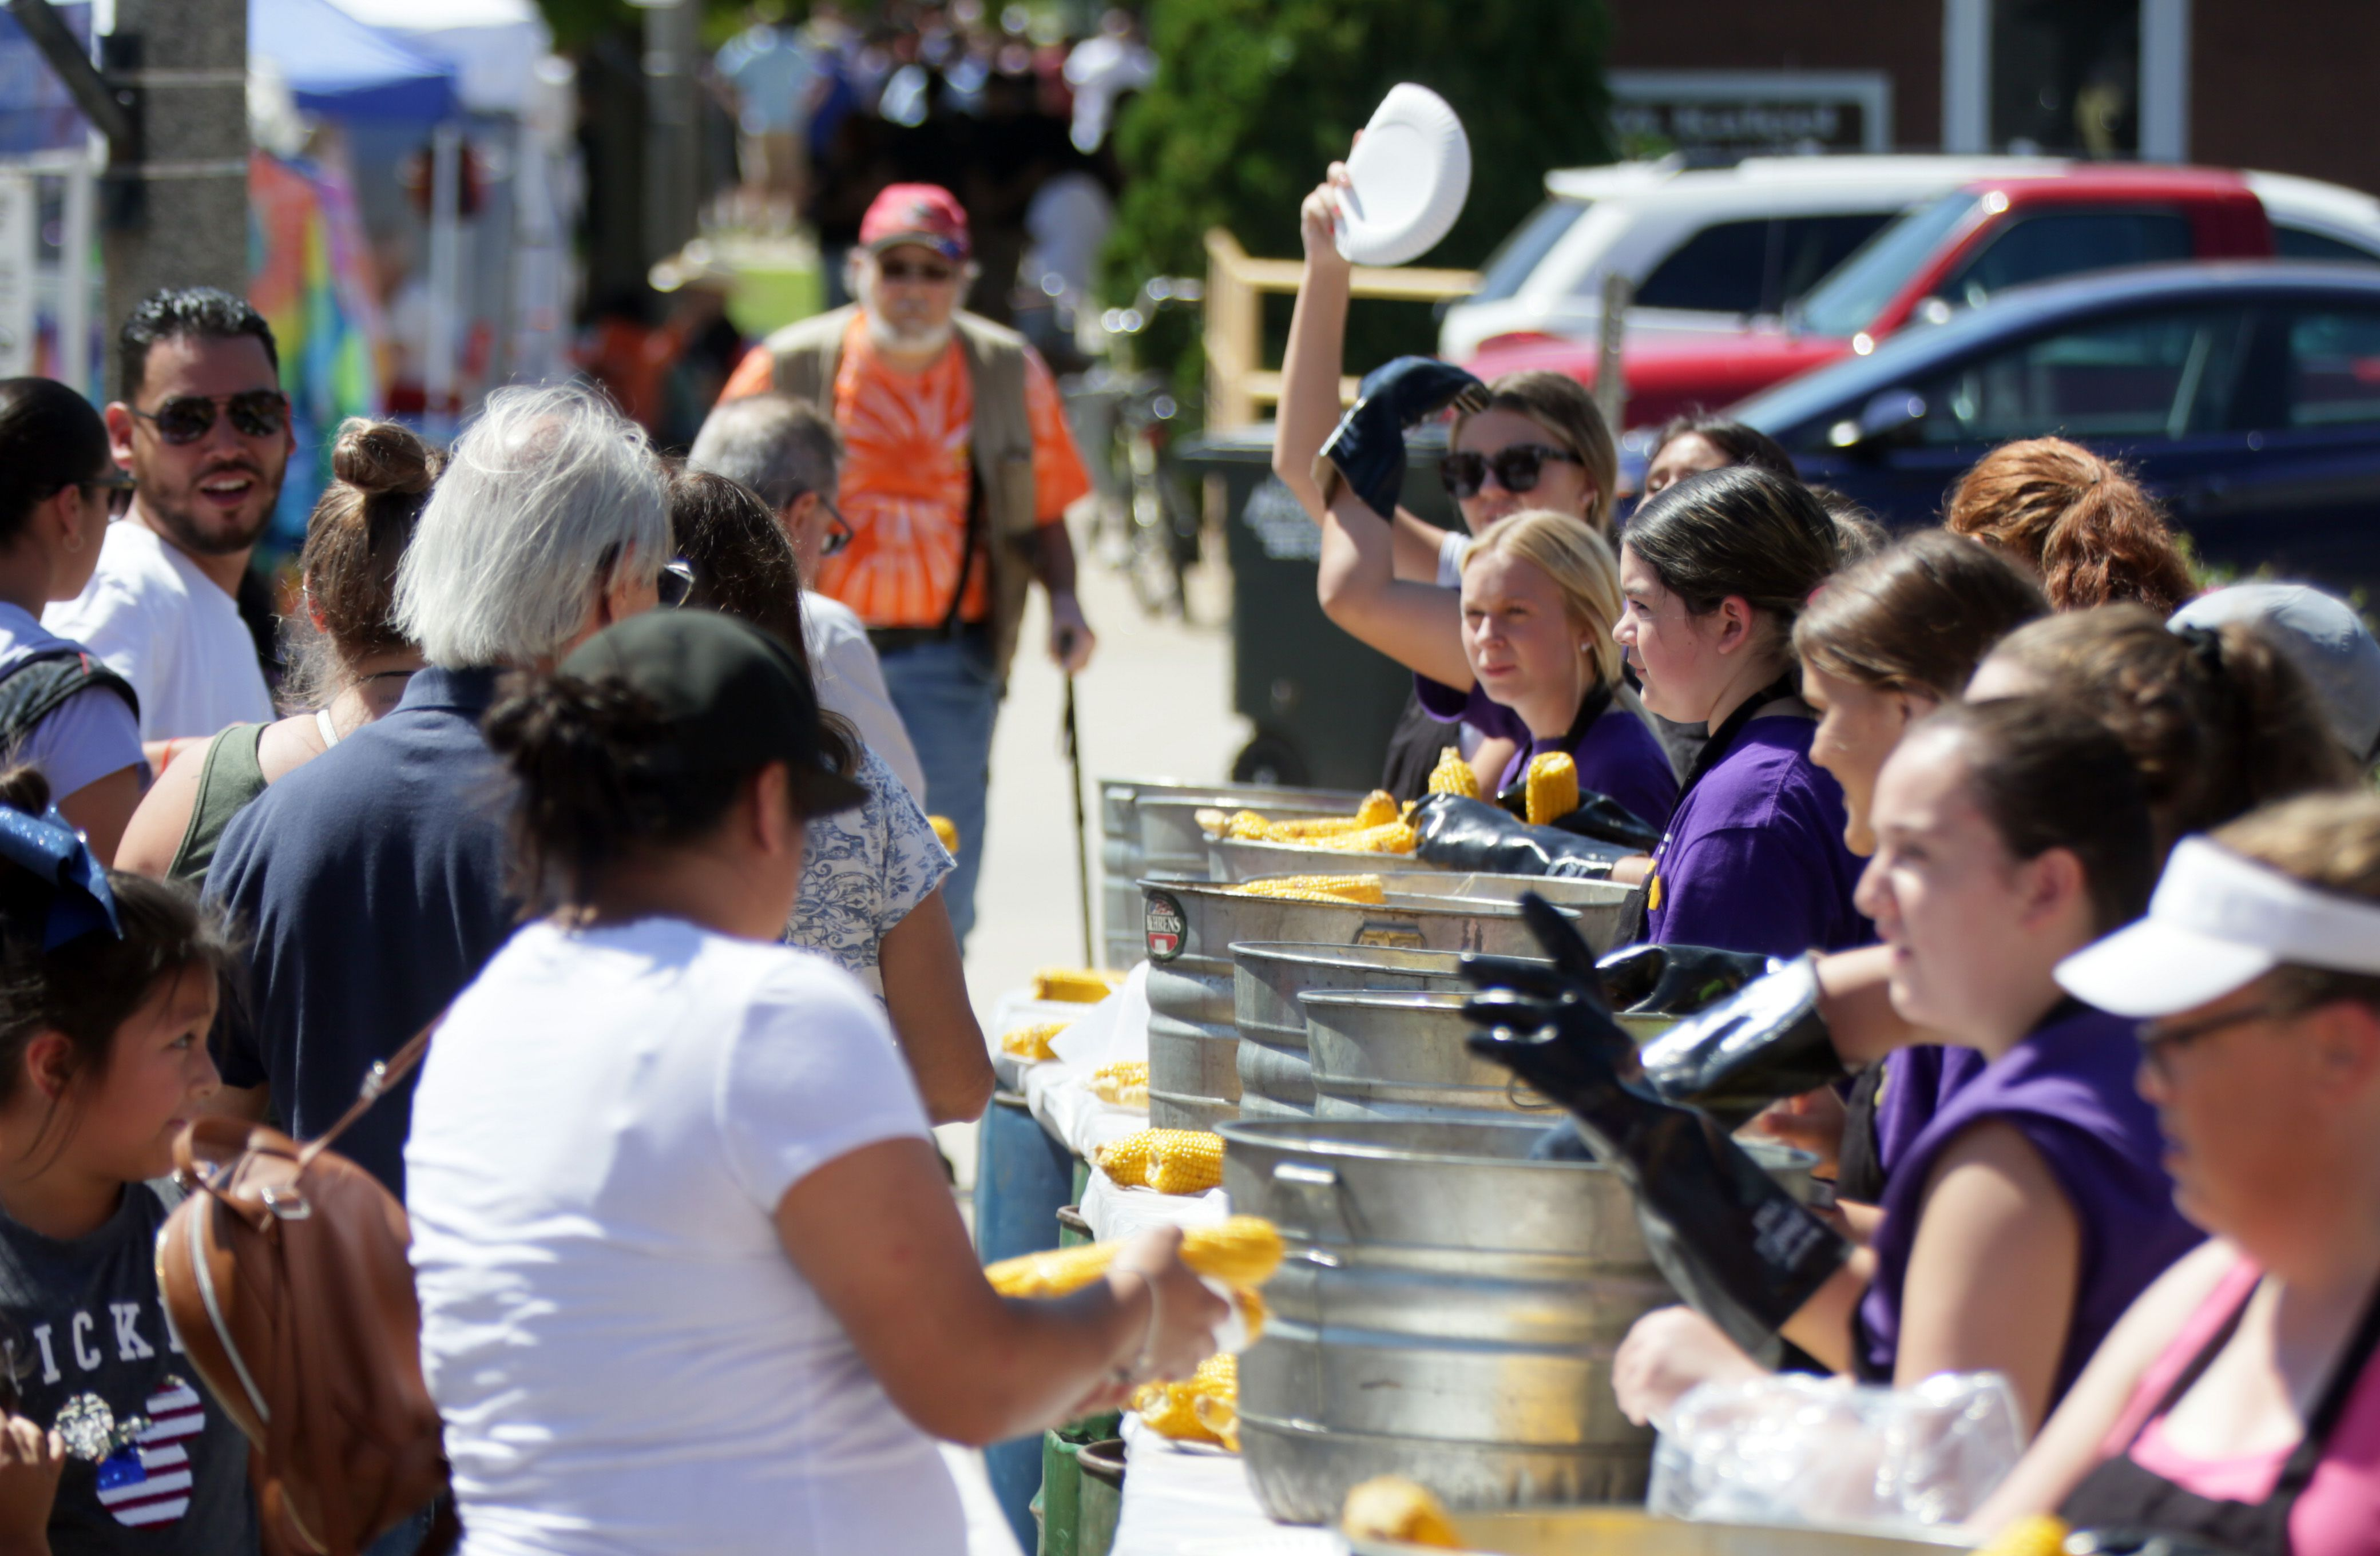 Volunteers hand out free sweet corn during the 74th annual Sweet Corn Festival in Mendota on Sunday, Aug. 15, 2021.